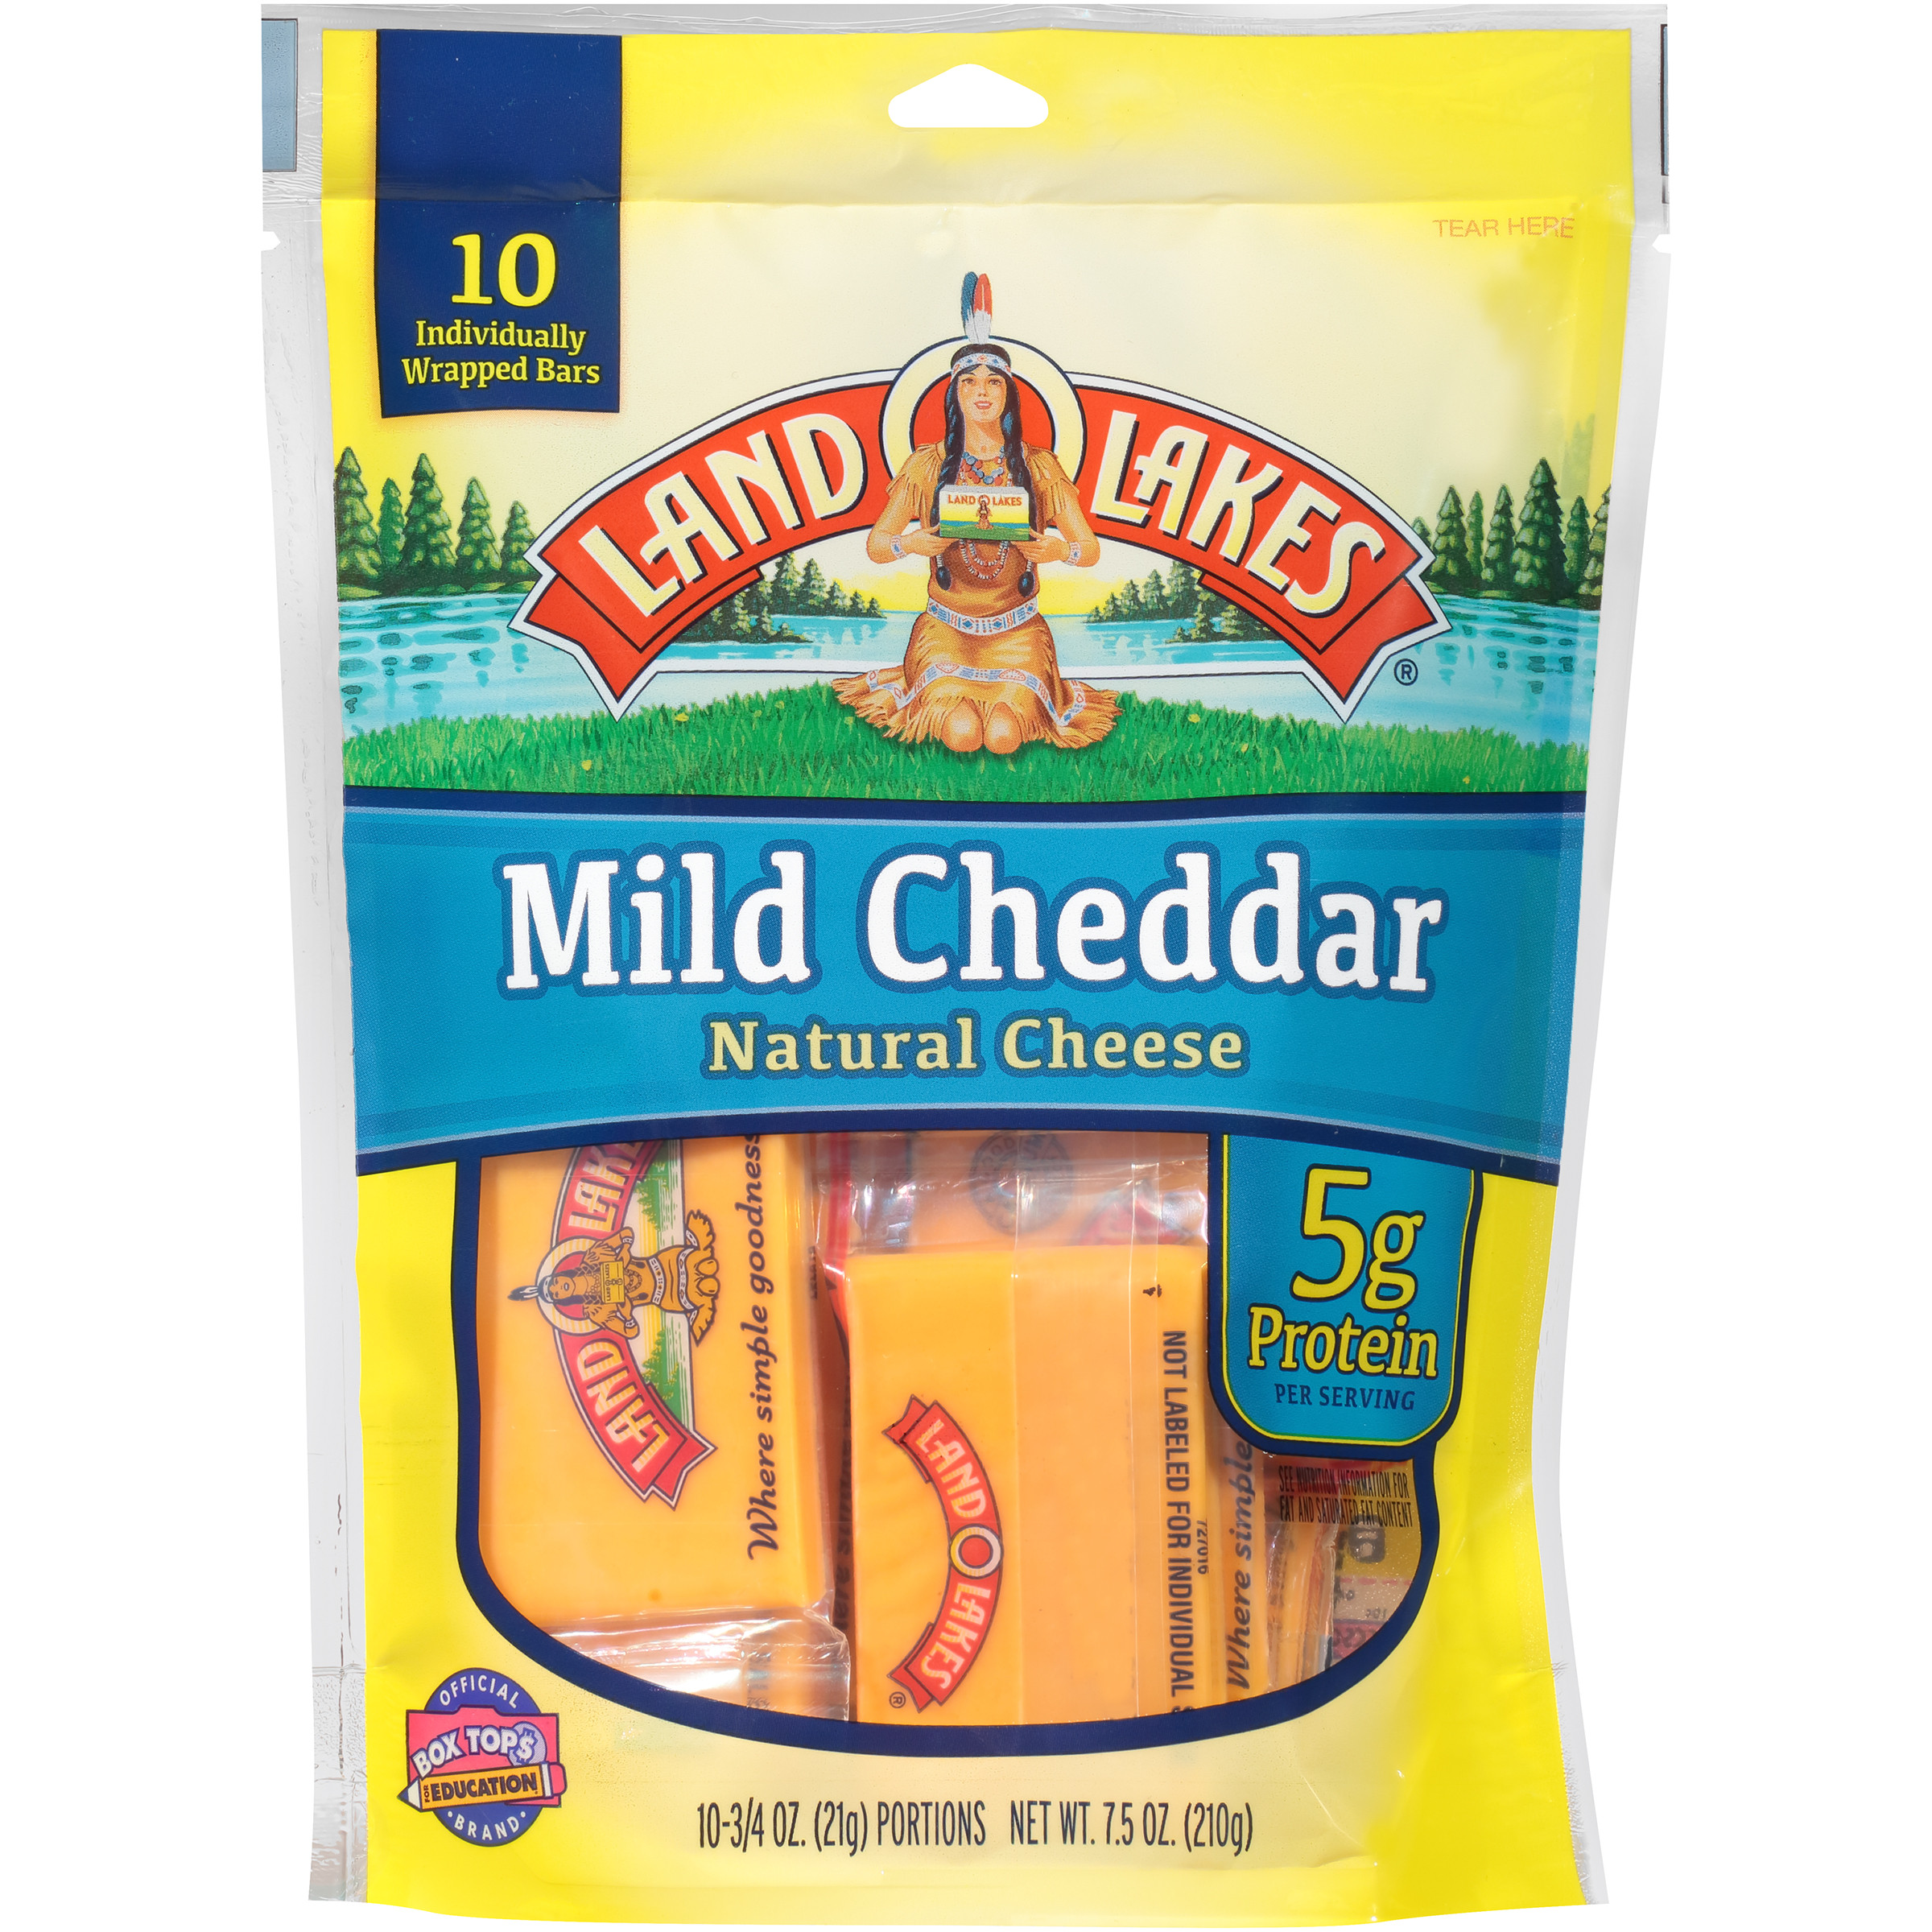 Walmart Tires Auto Parts Carson City Nv Land O Lakes Mild Cheddar Snack Cheese 10 Ct 7 5 Oz Walmart Com